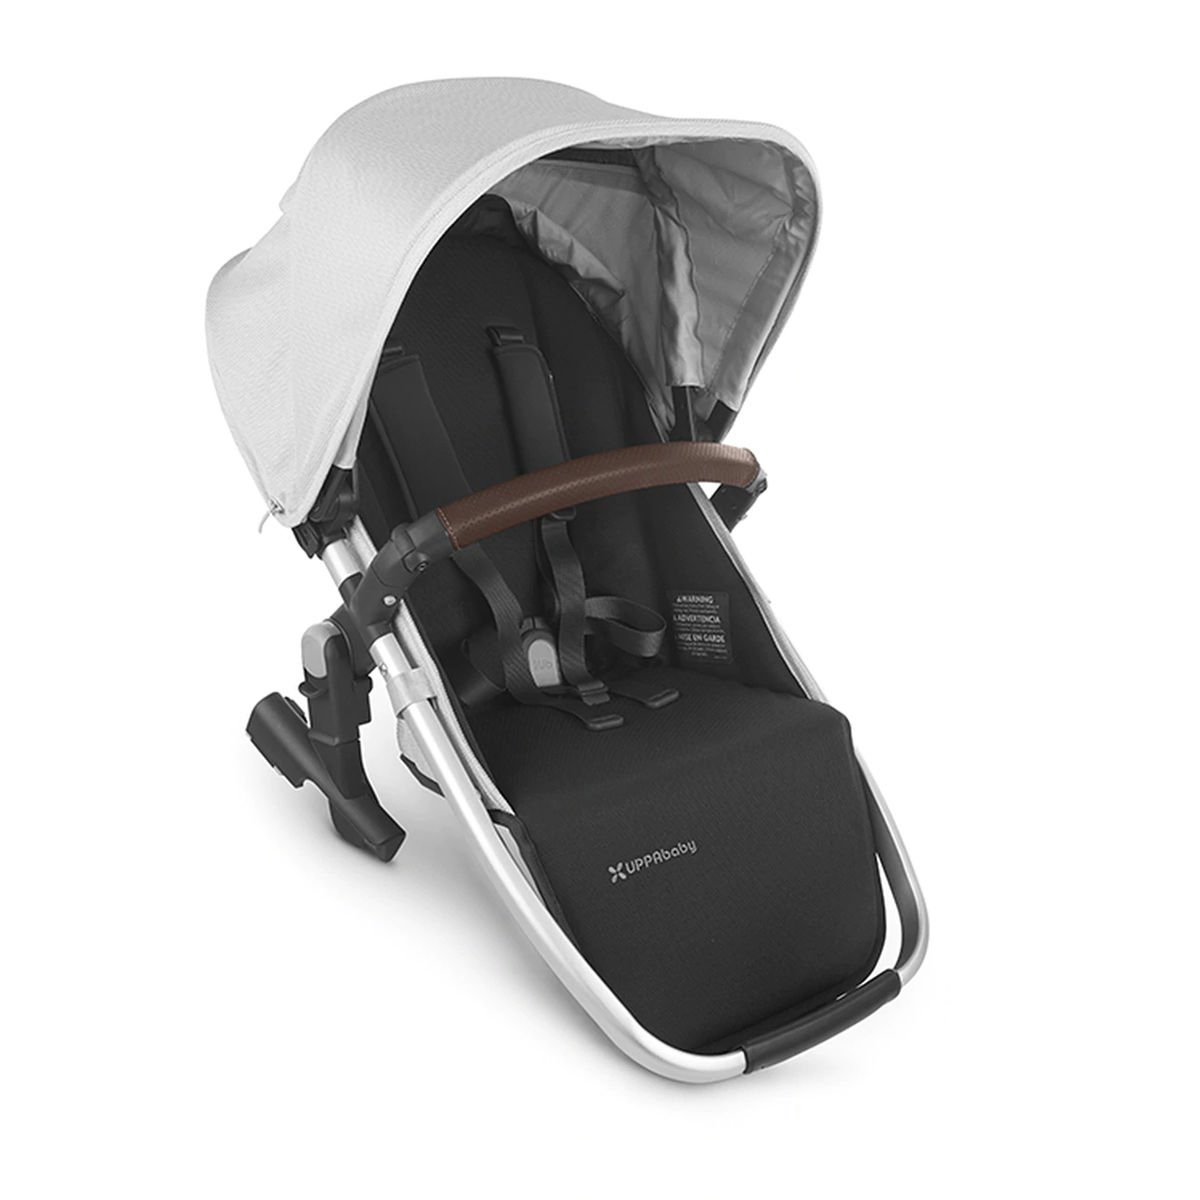 UPPABaby VISTA V2 RumbleSeat - BRYCE (White Marl/Silver/Saddle Leather)